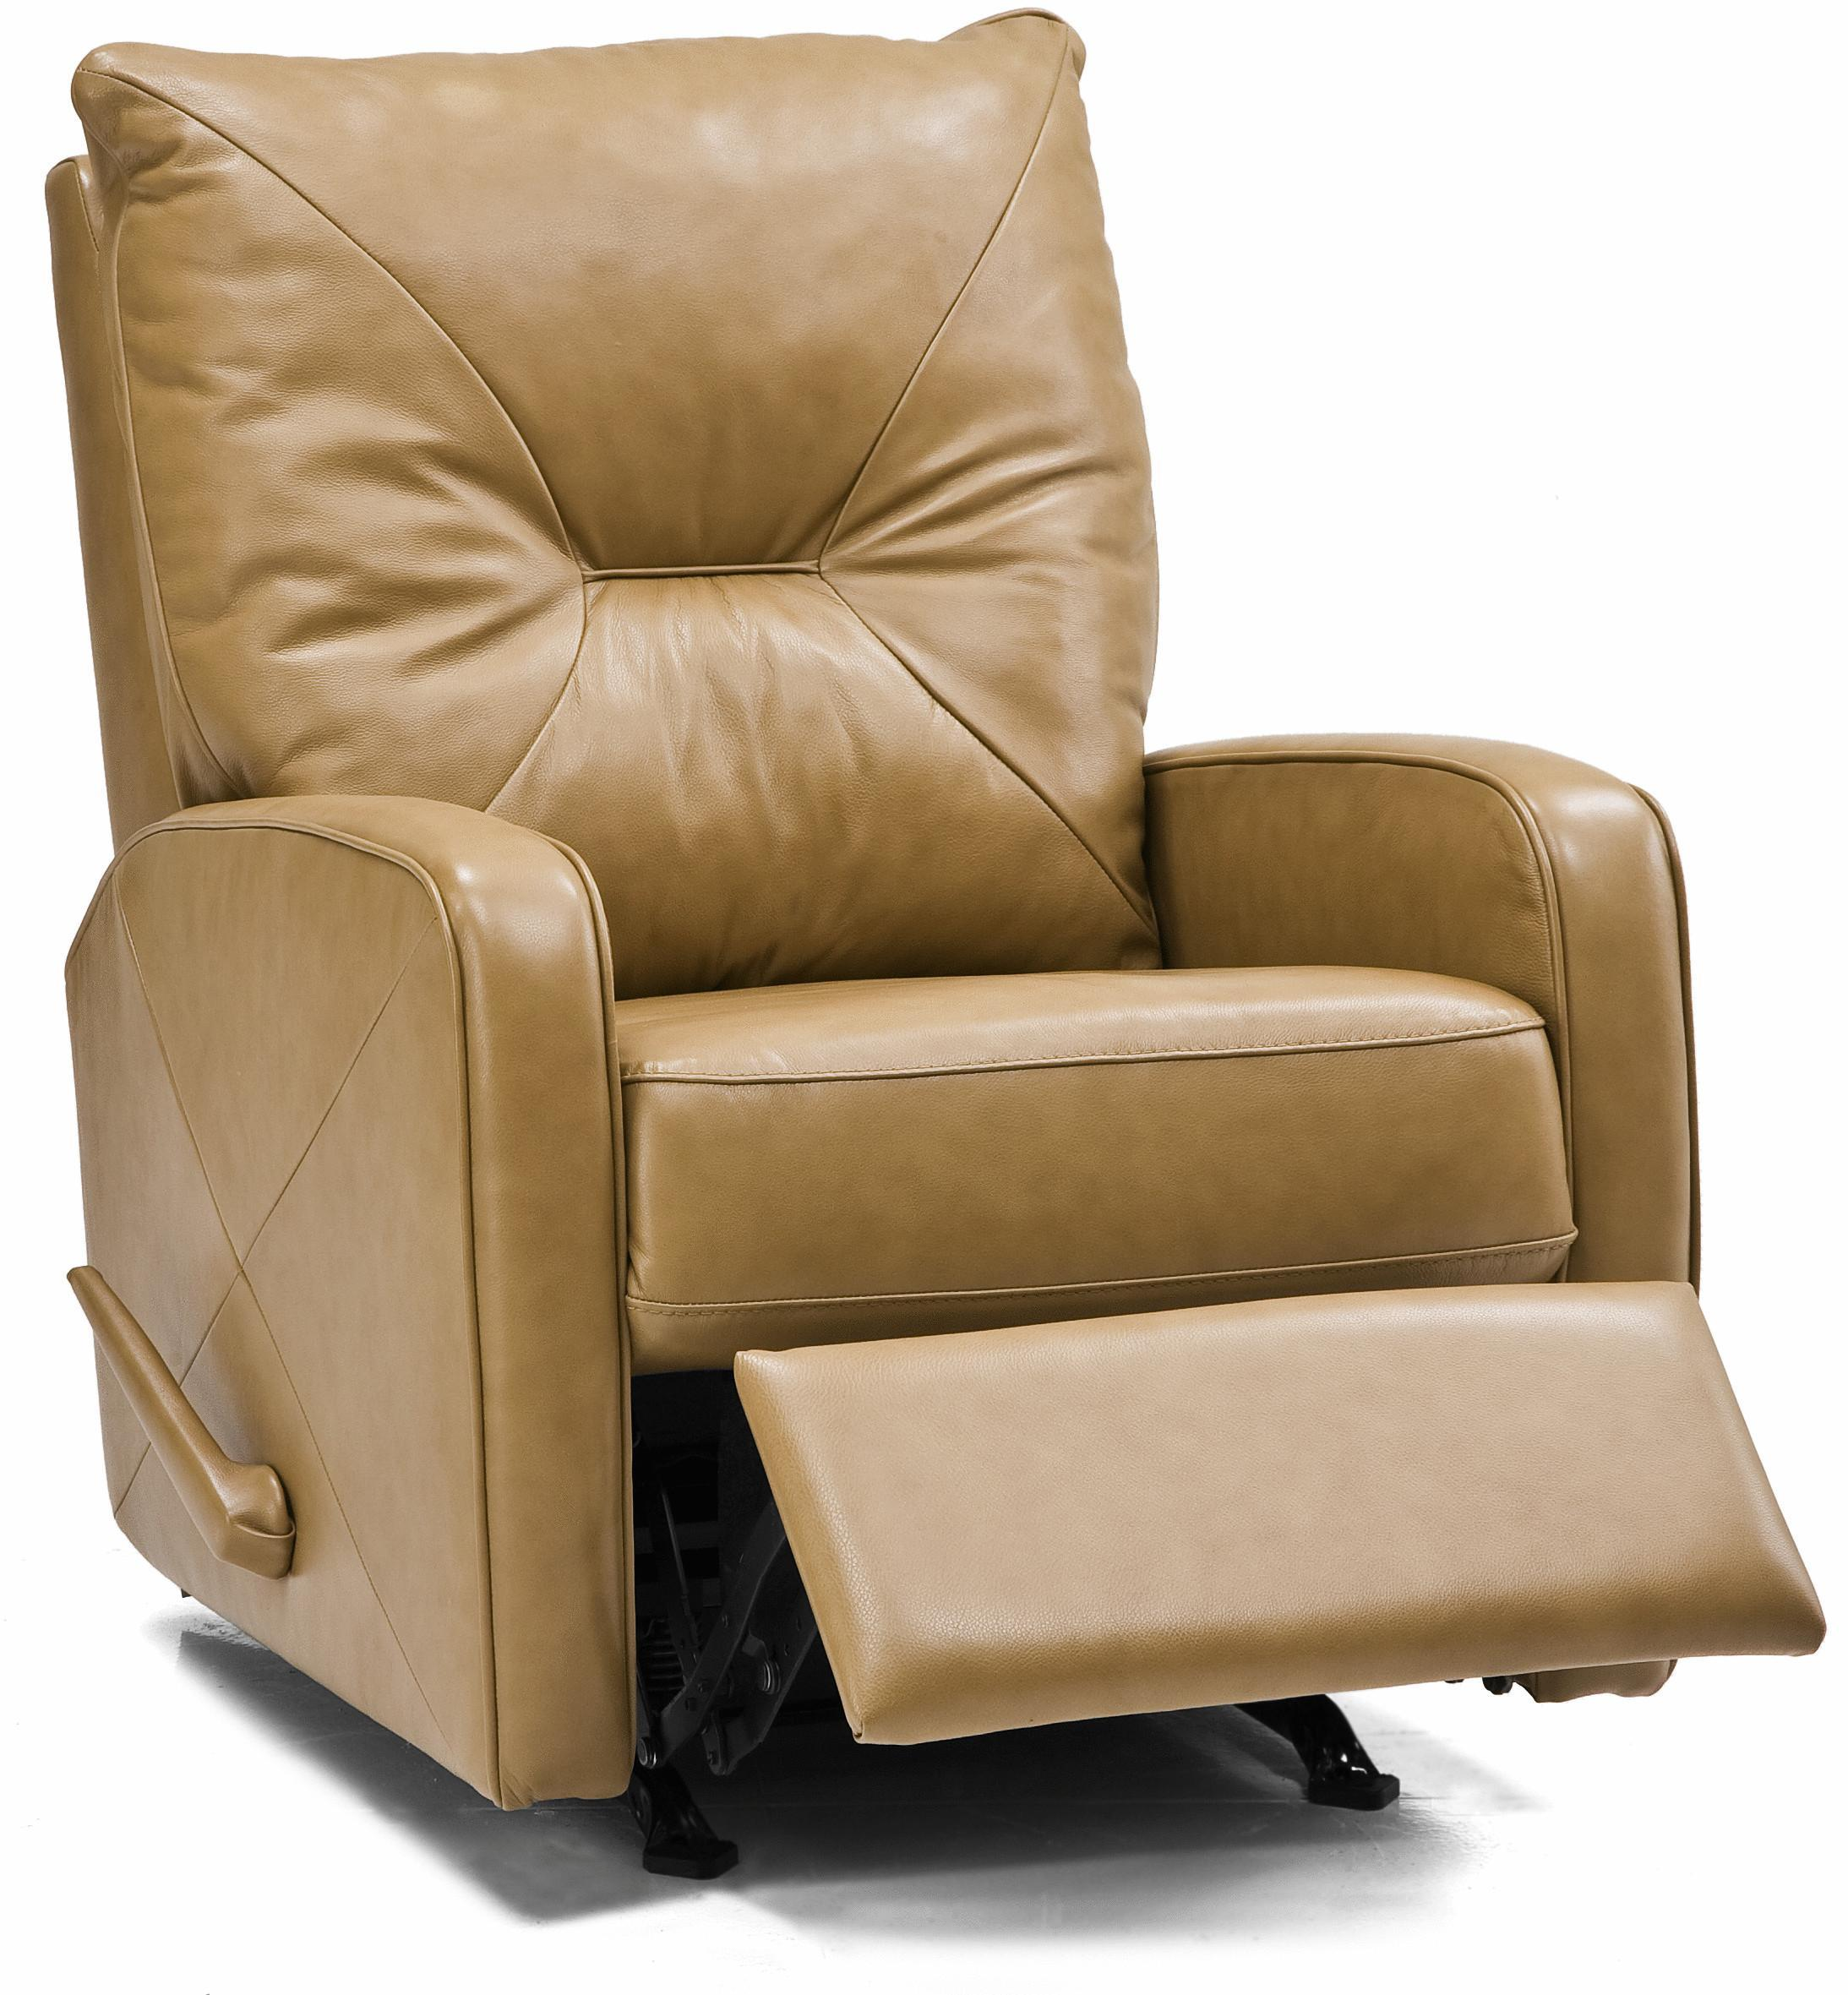 Reclining Rocking Chair Palliser Theo 42002 33 Swivel Rocking Reclining Chair